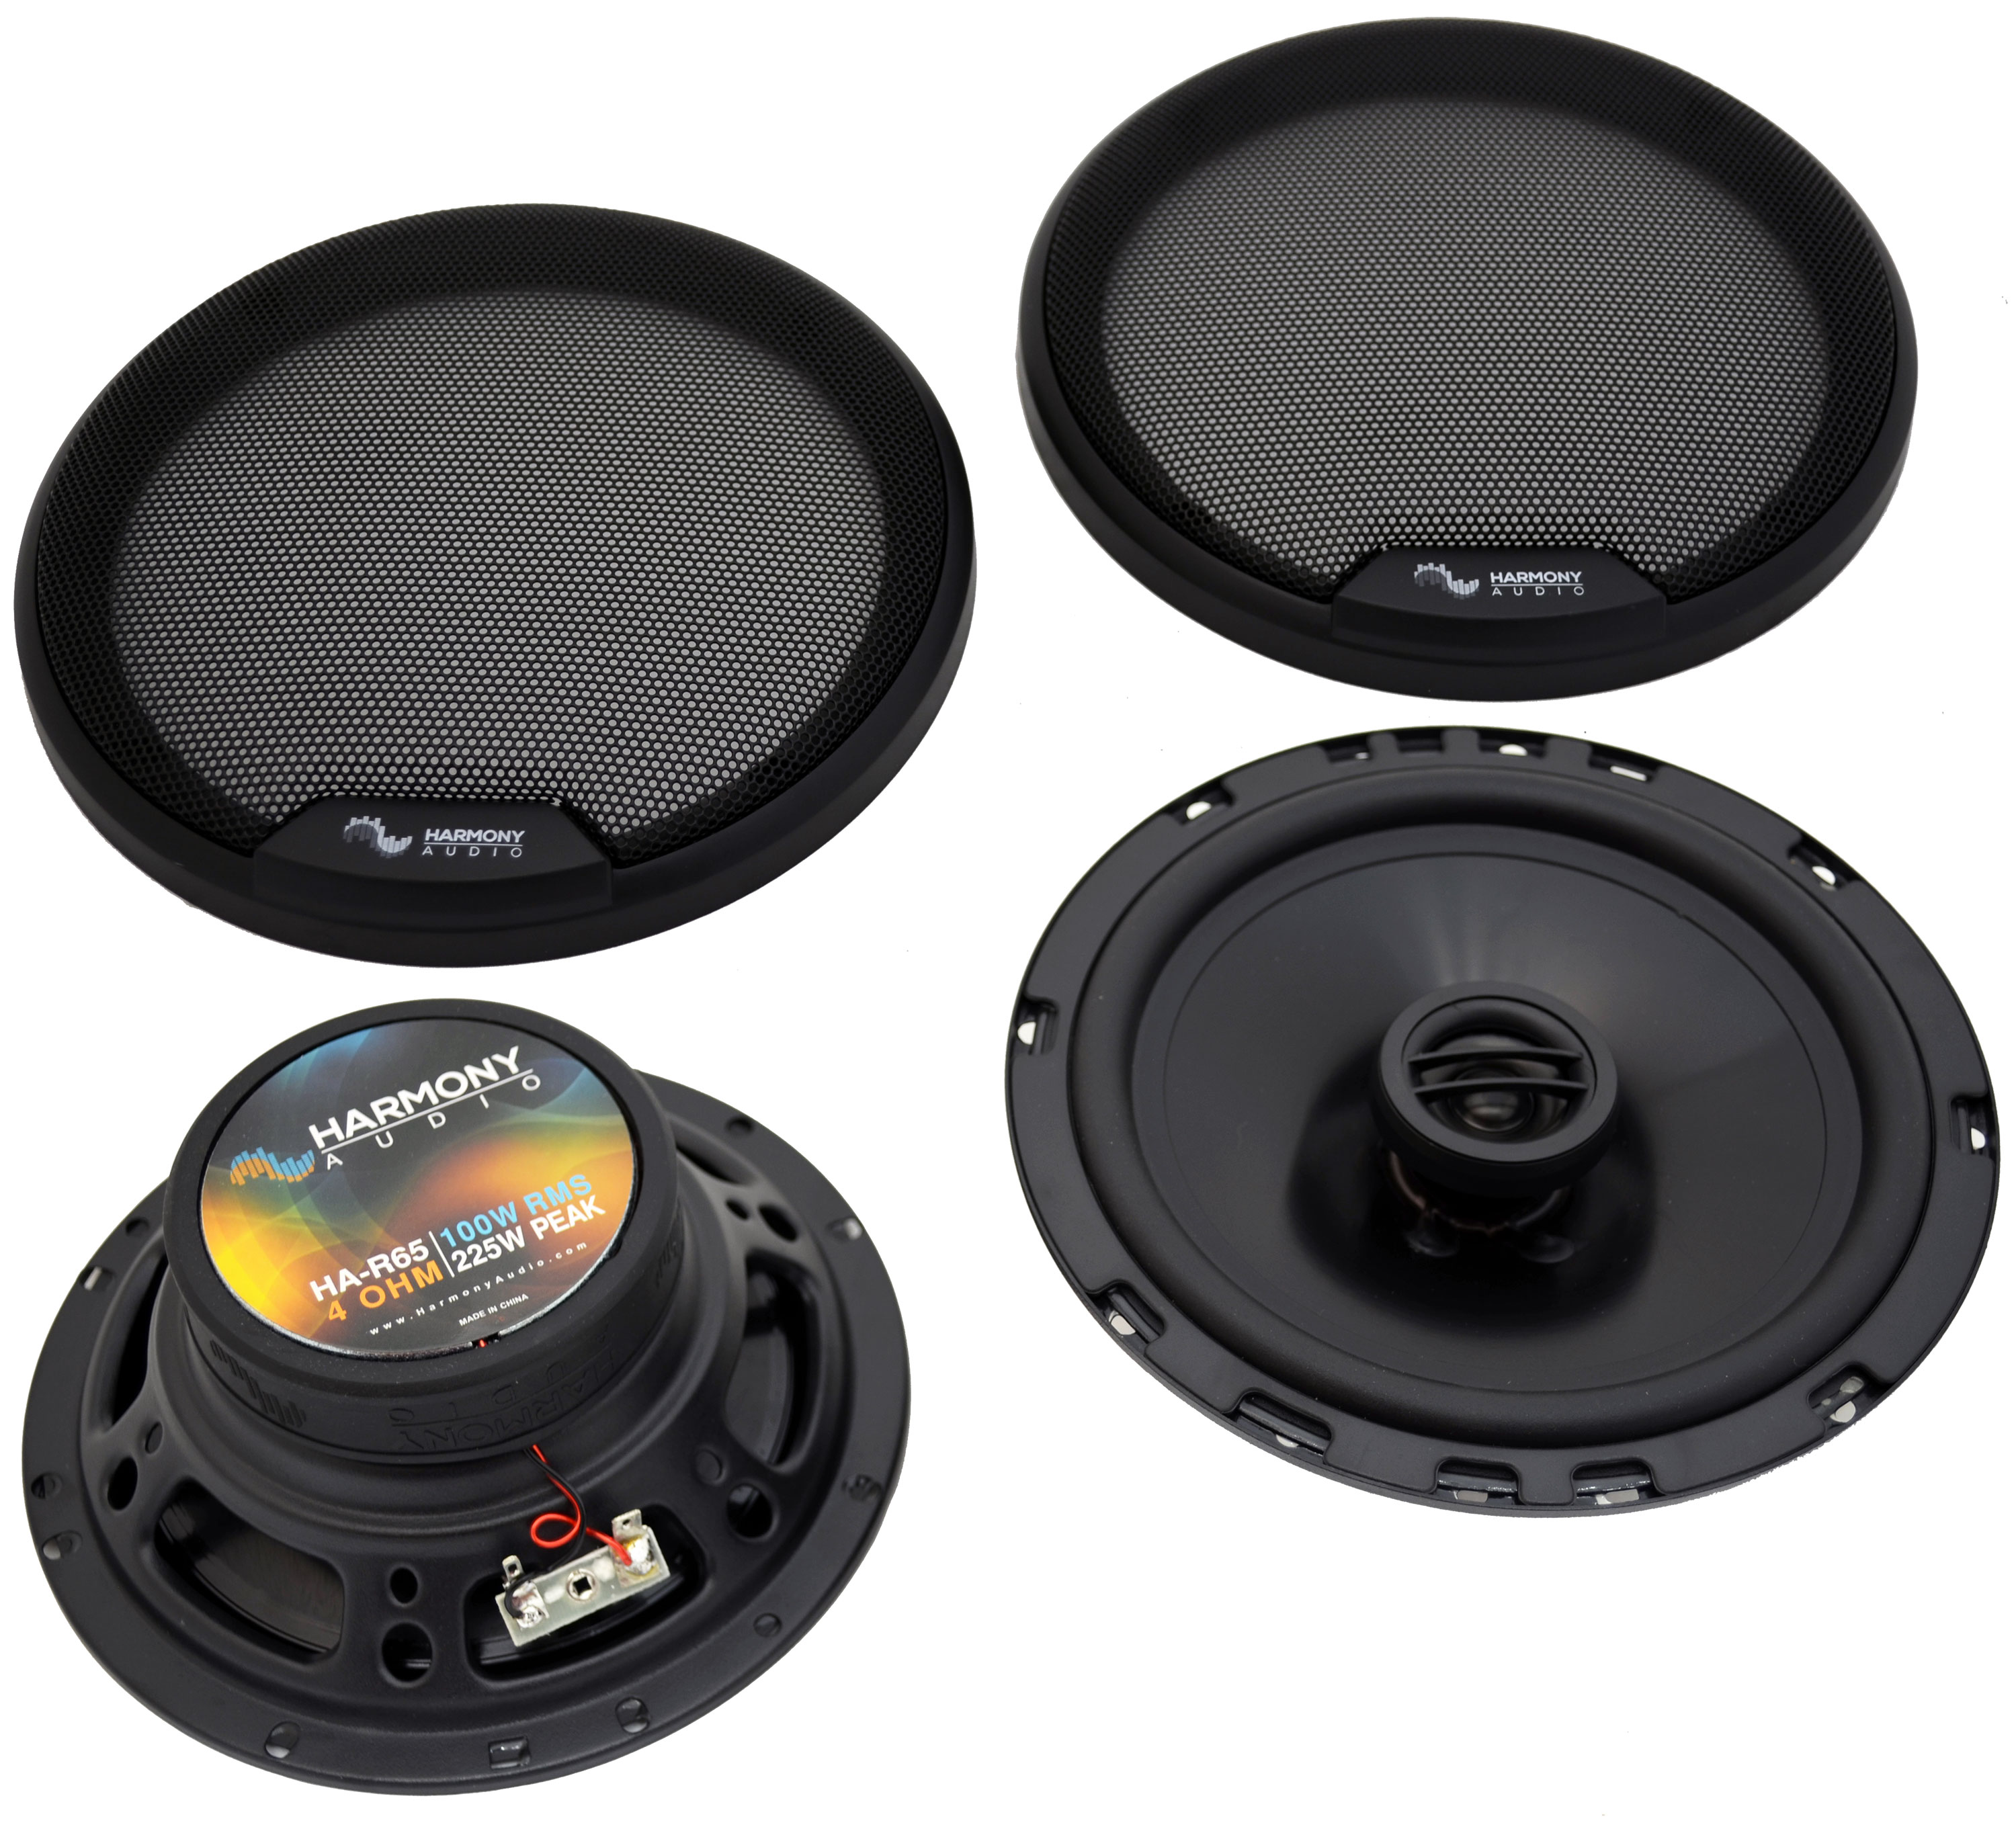 Fits Audi A8 1997-2003 Rear Deck Replacement Speaker Harmony HA-R65 Speakers New